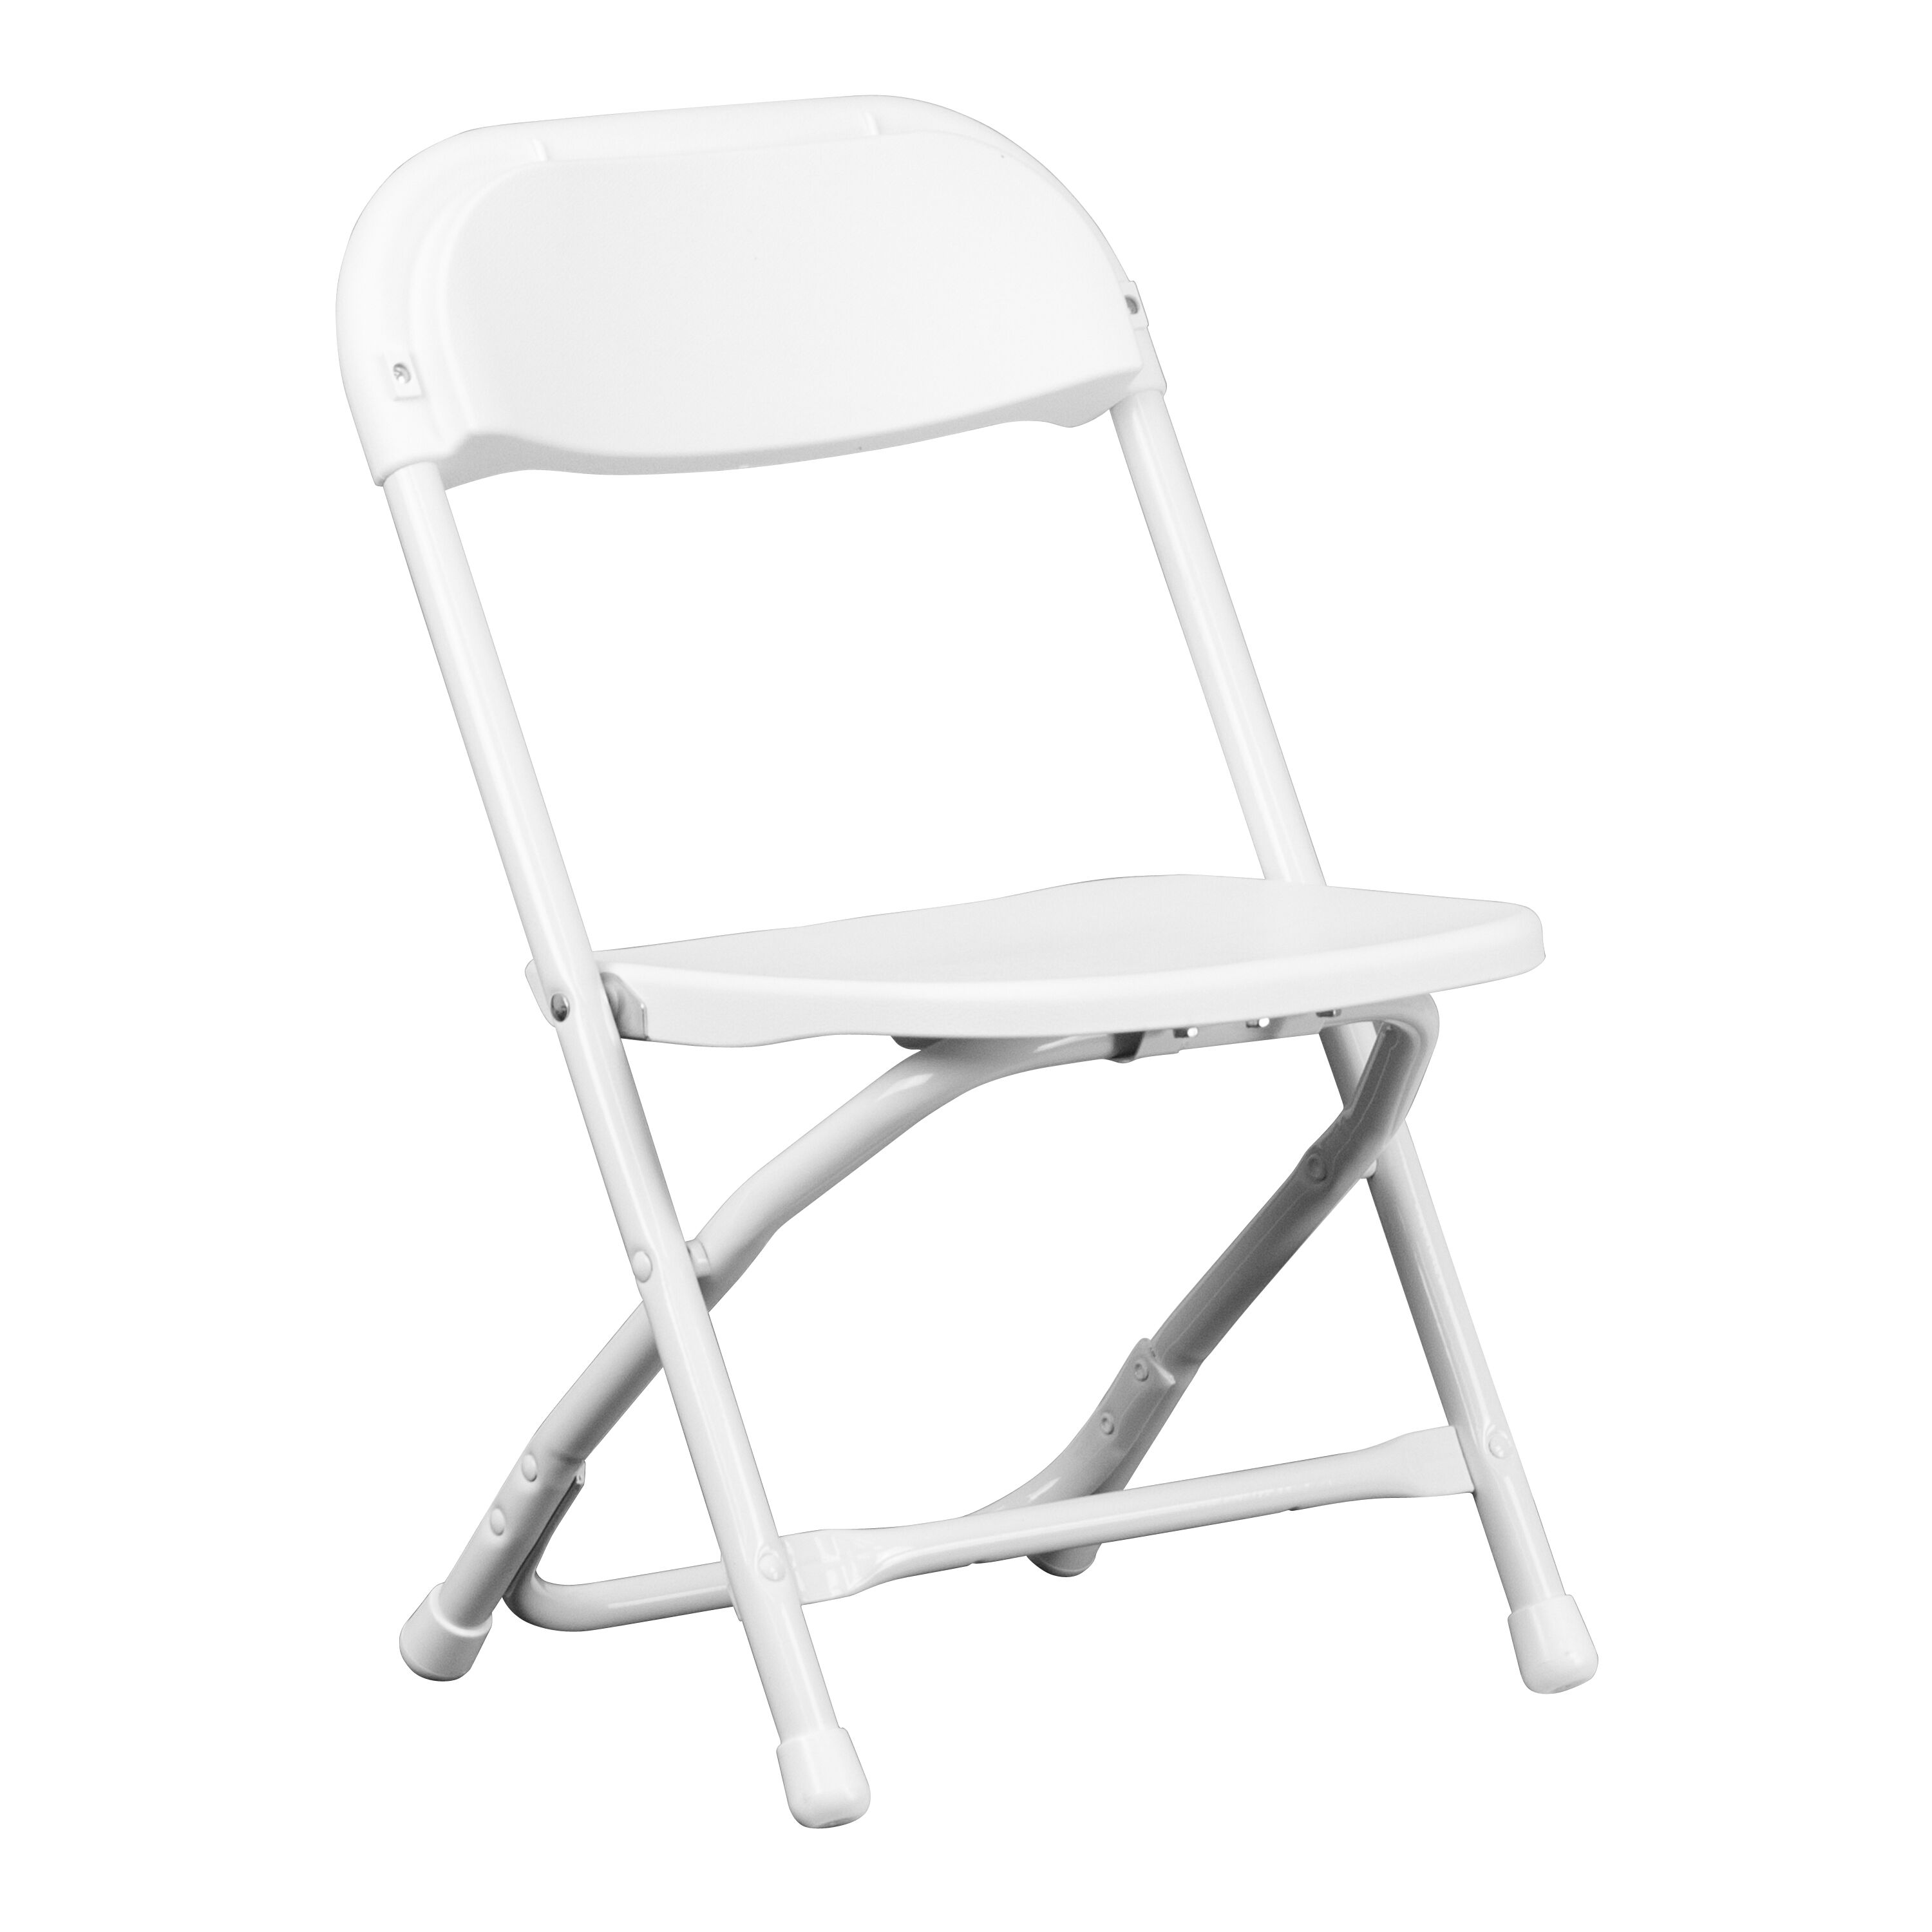 white folding chairs revolving chair parts dealers kids y kid wh gg foldingchairs4less com